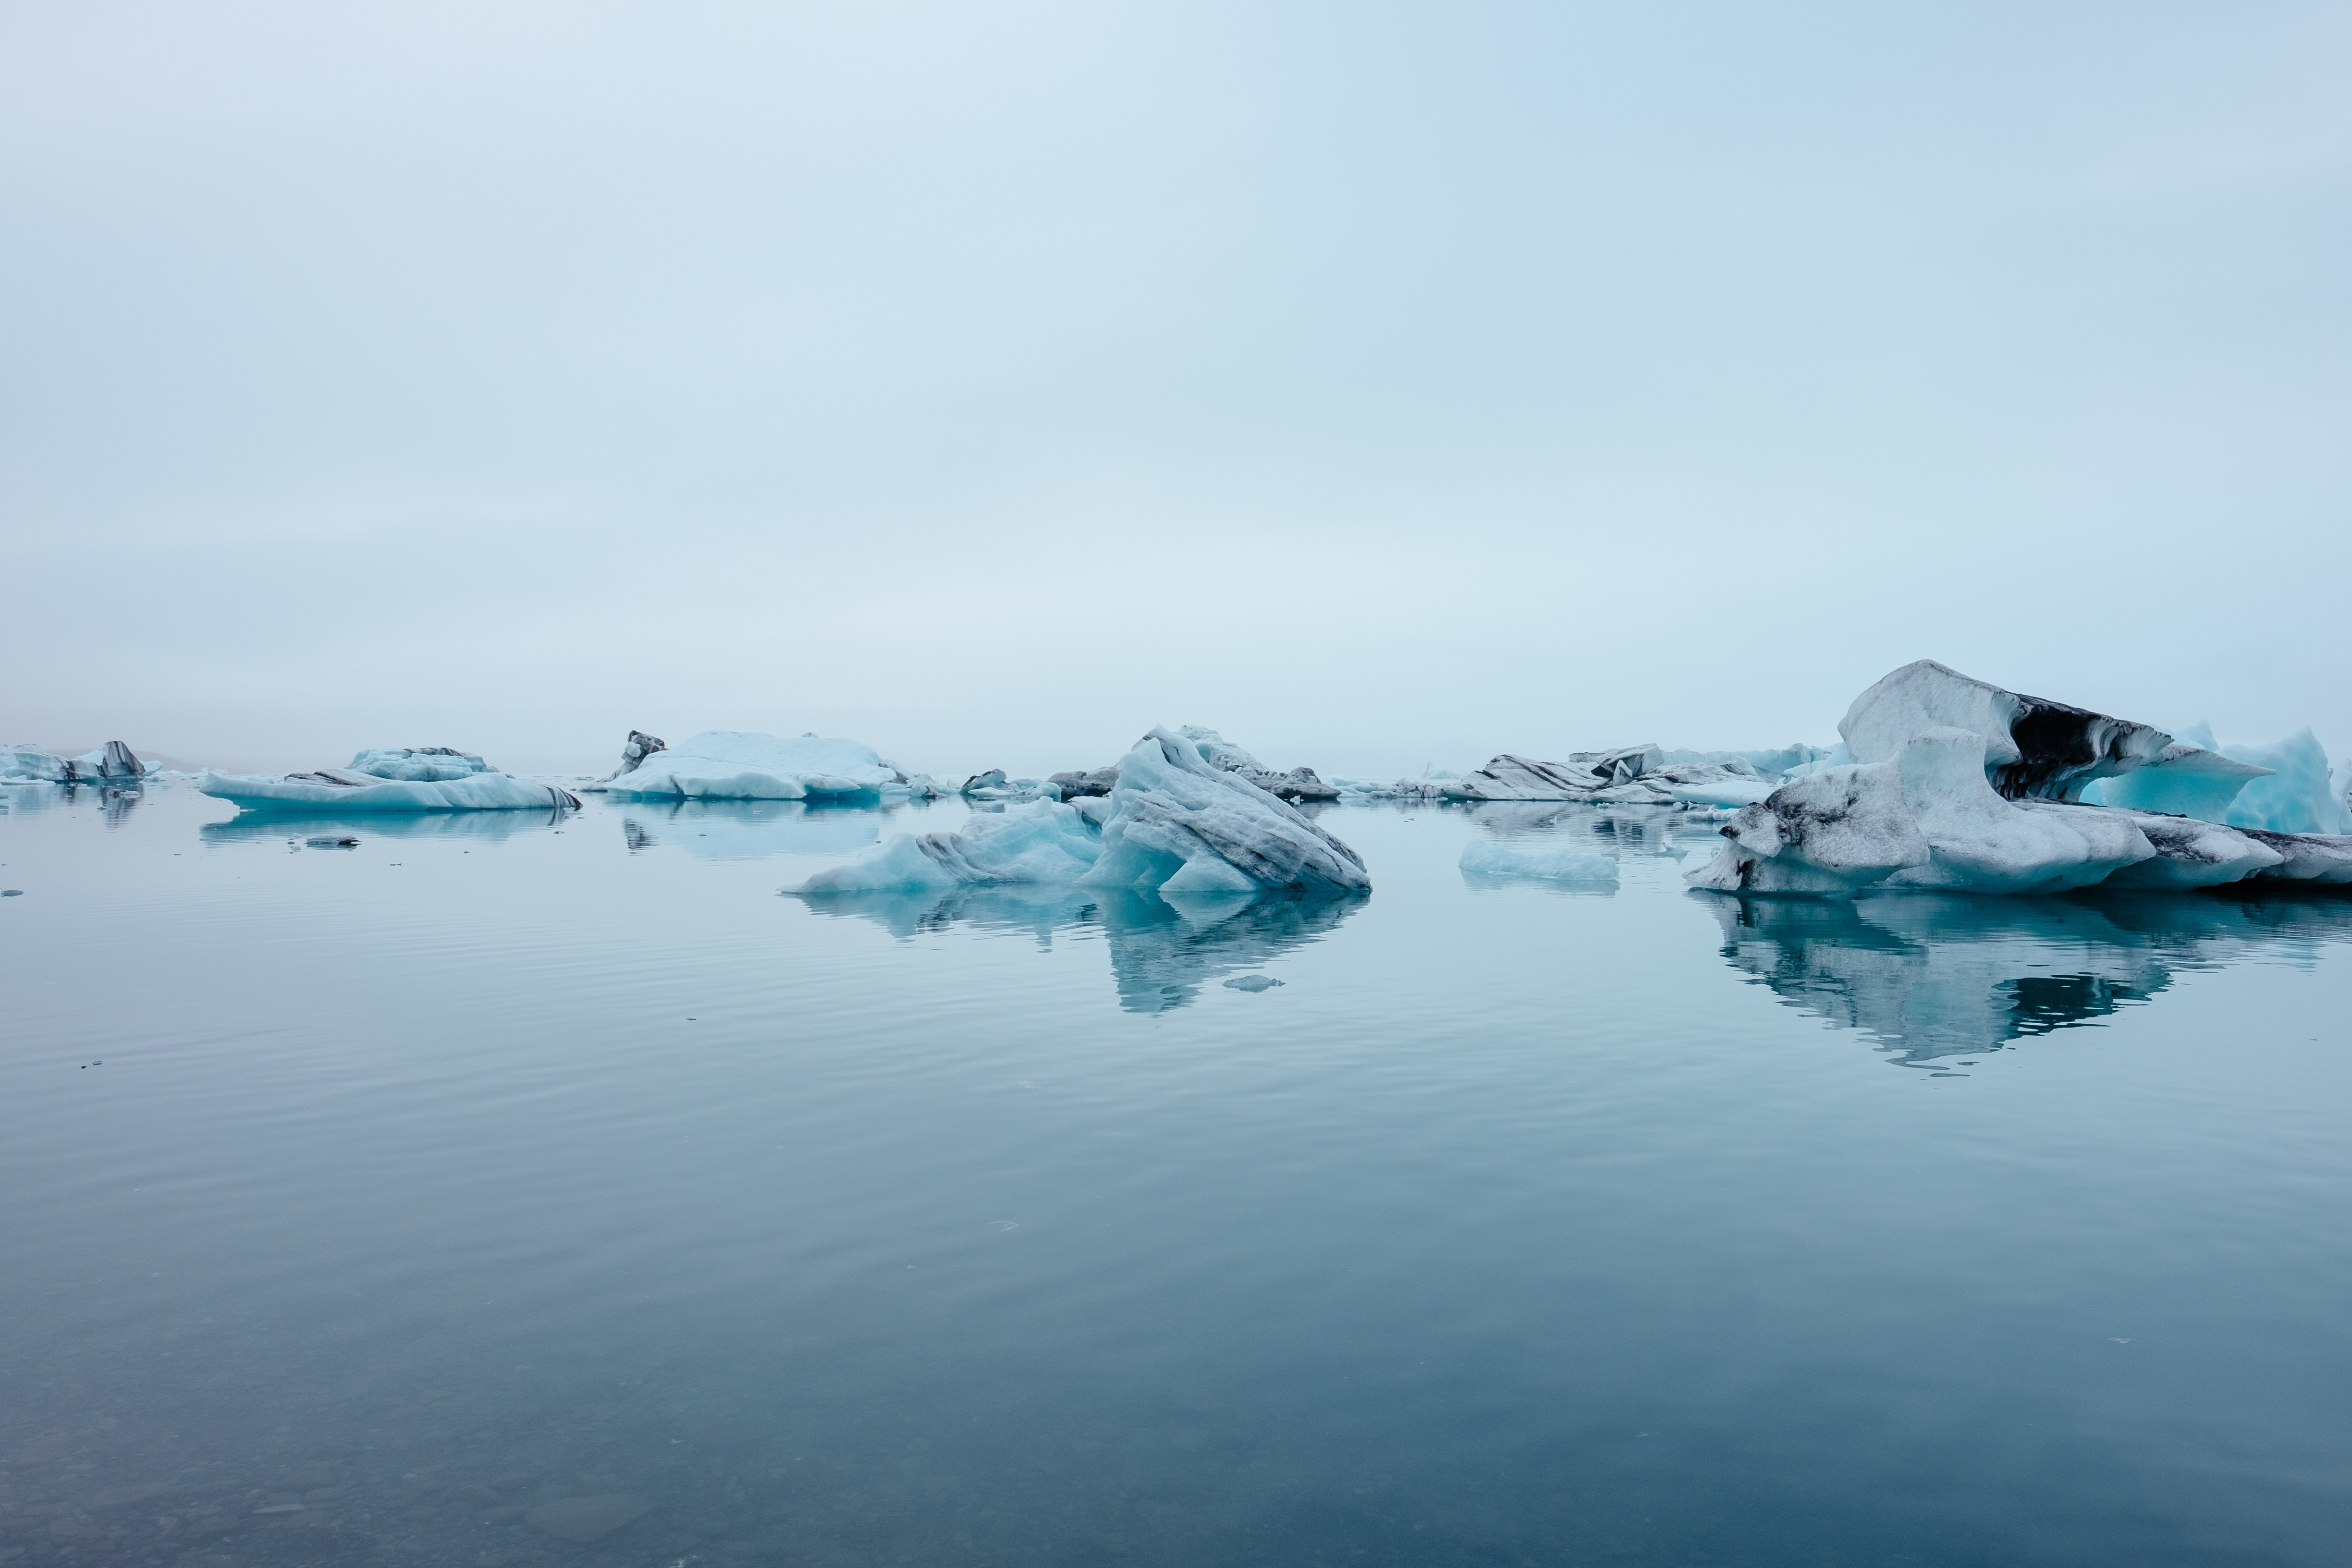 Image of icebergs